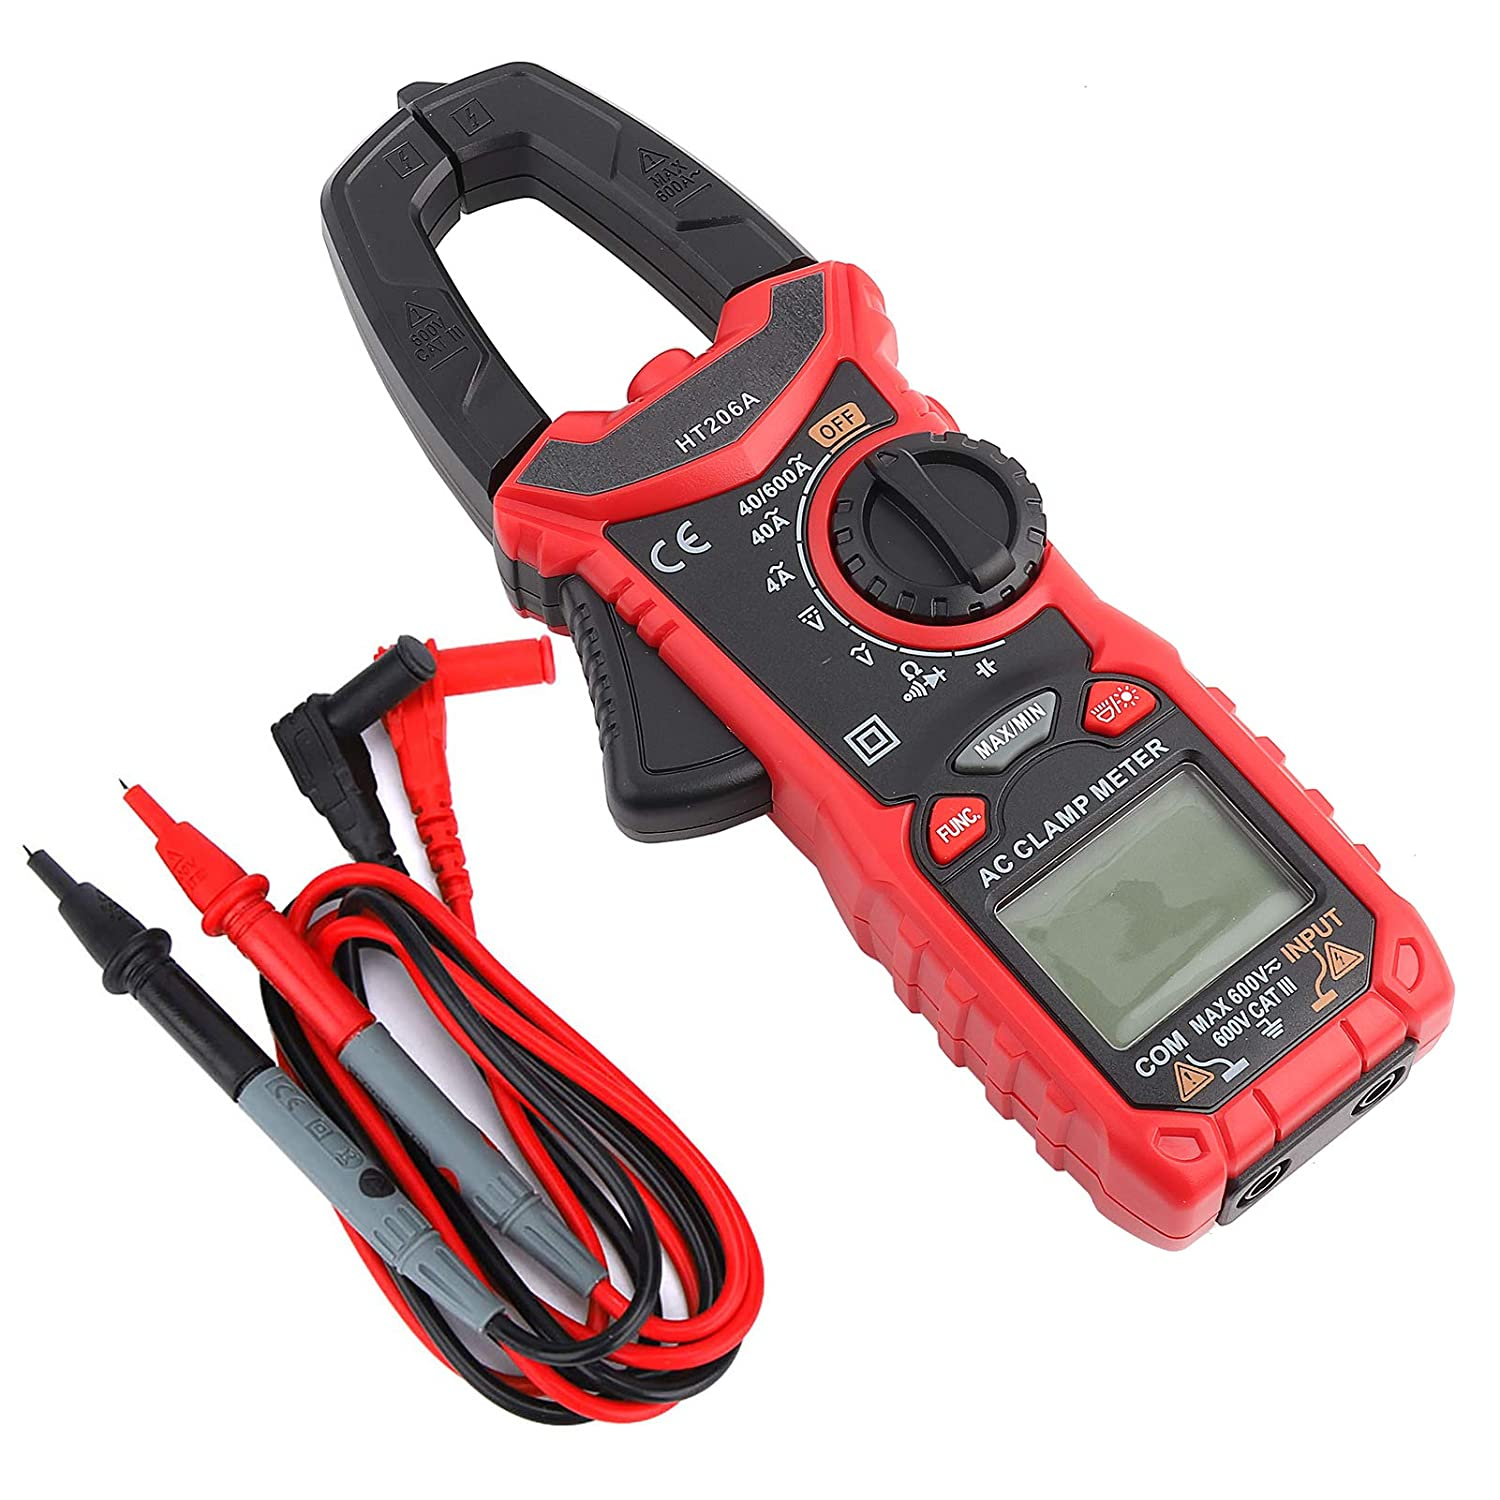 HT206D HT206 Digital Clamp Meter 6000 Counts Multimeter with AC//DC Resistance Capacitance Current Voltage Continuity Buzzer NCV